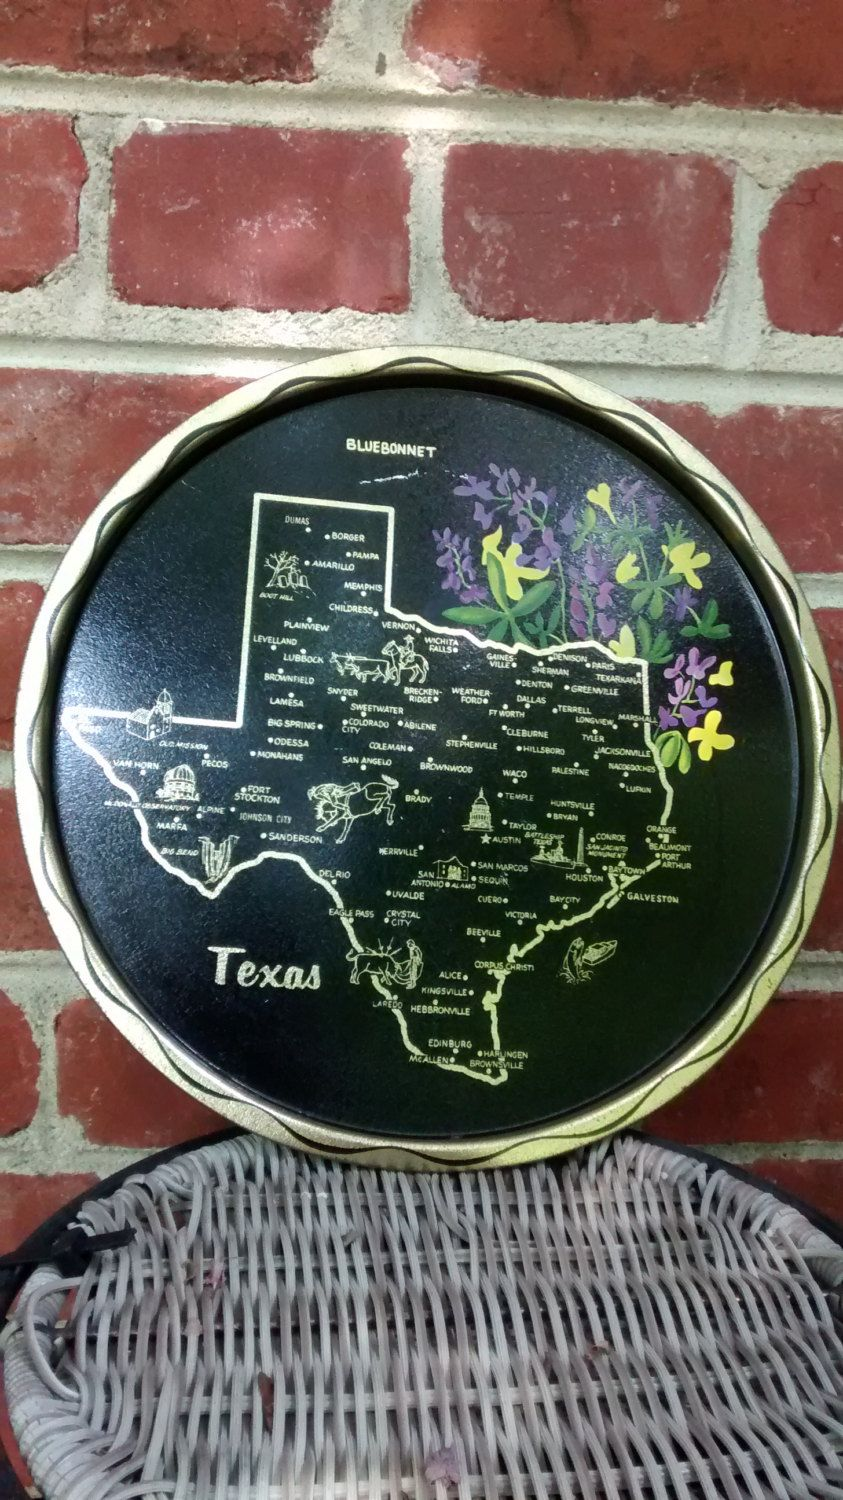 Vintage Texas map tray / black metal tray with Texas landmarks and state flower/ Texas home decor by HappyVintageStudio on Etsy